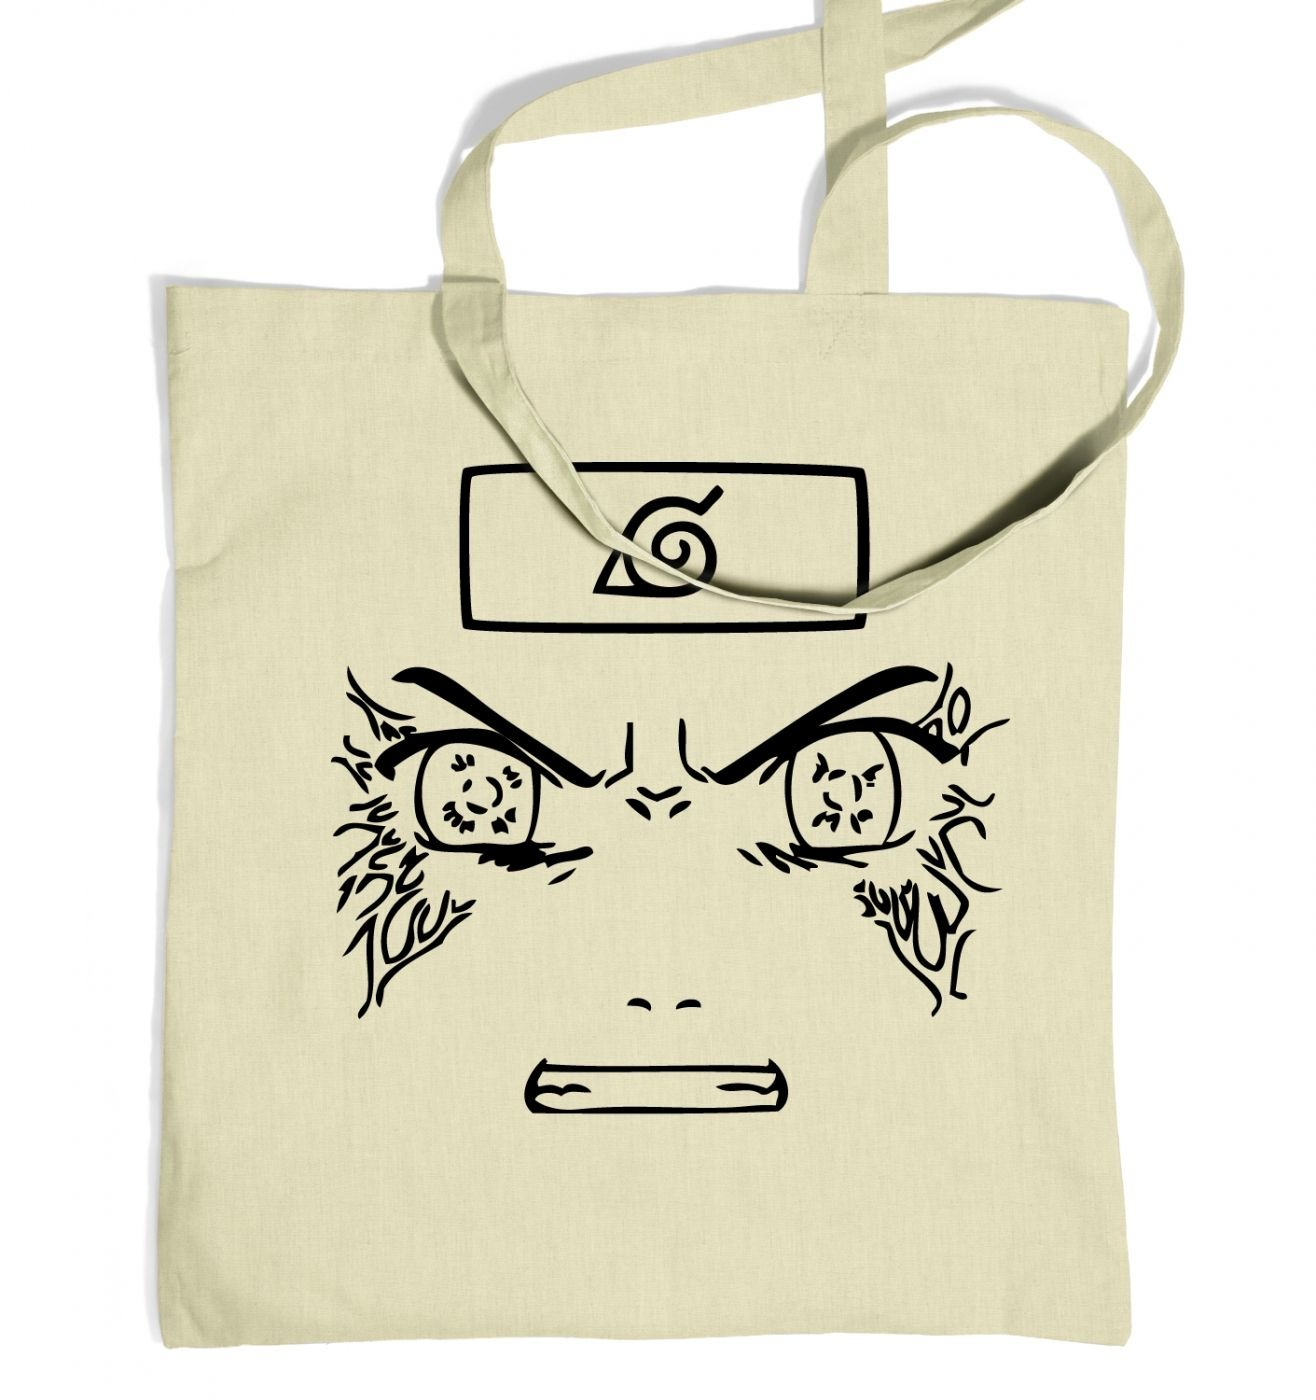 Neji Face - Tote Bag